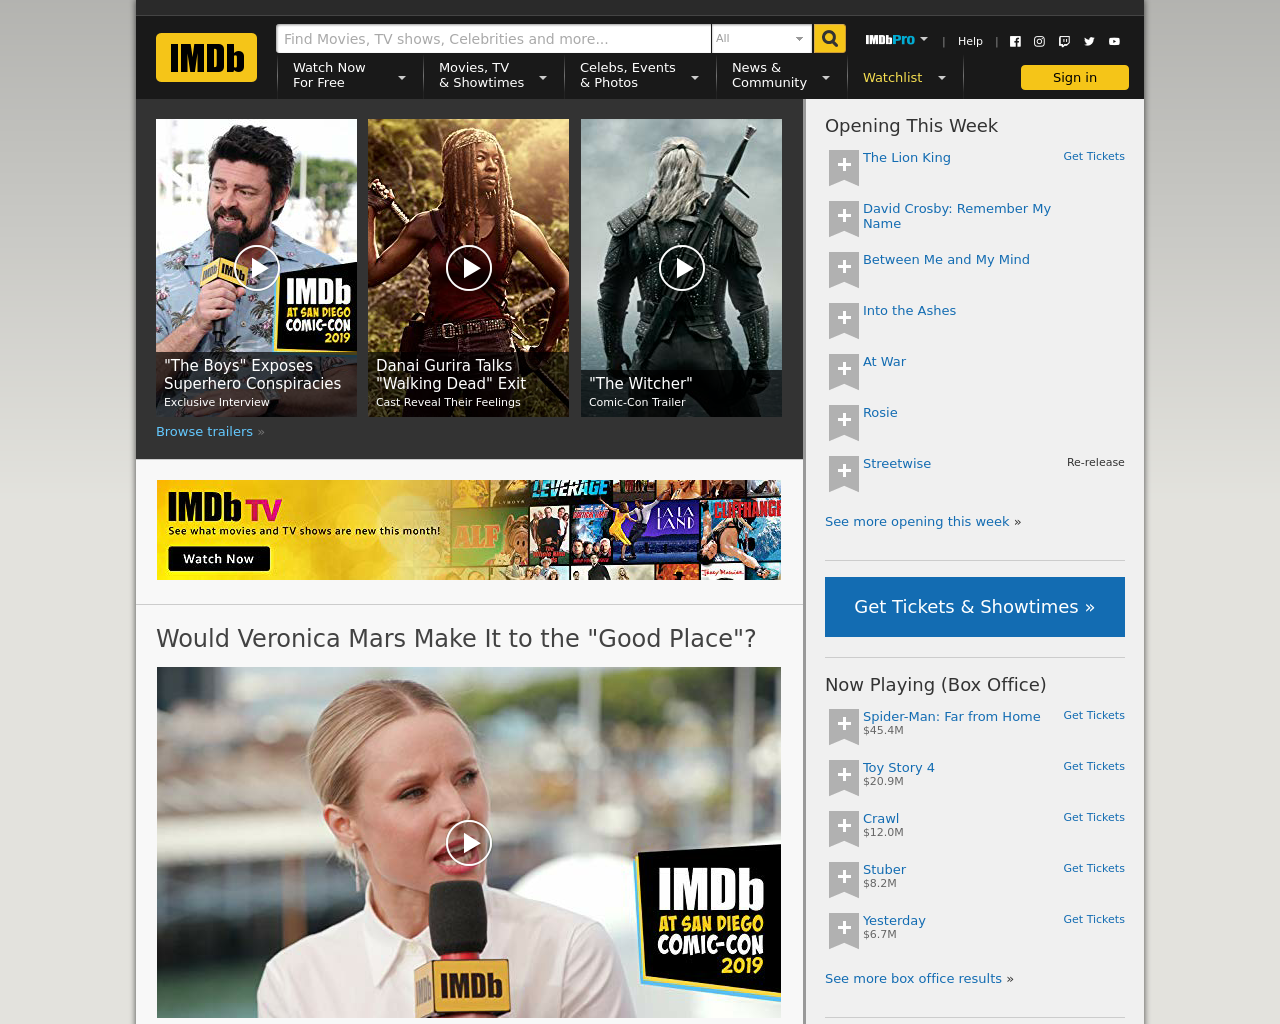 Imdb Advertising Mediakits, Reviews, Pricing, Traffic, Rate